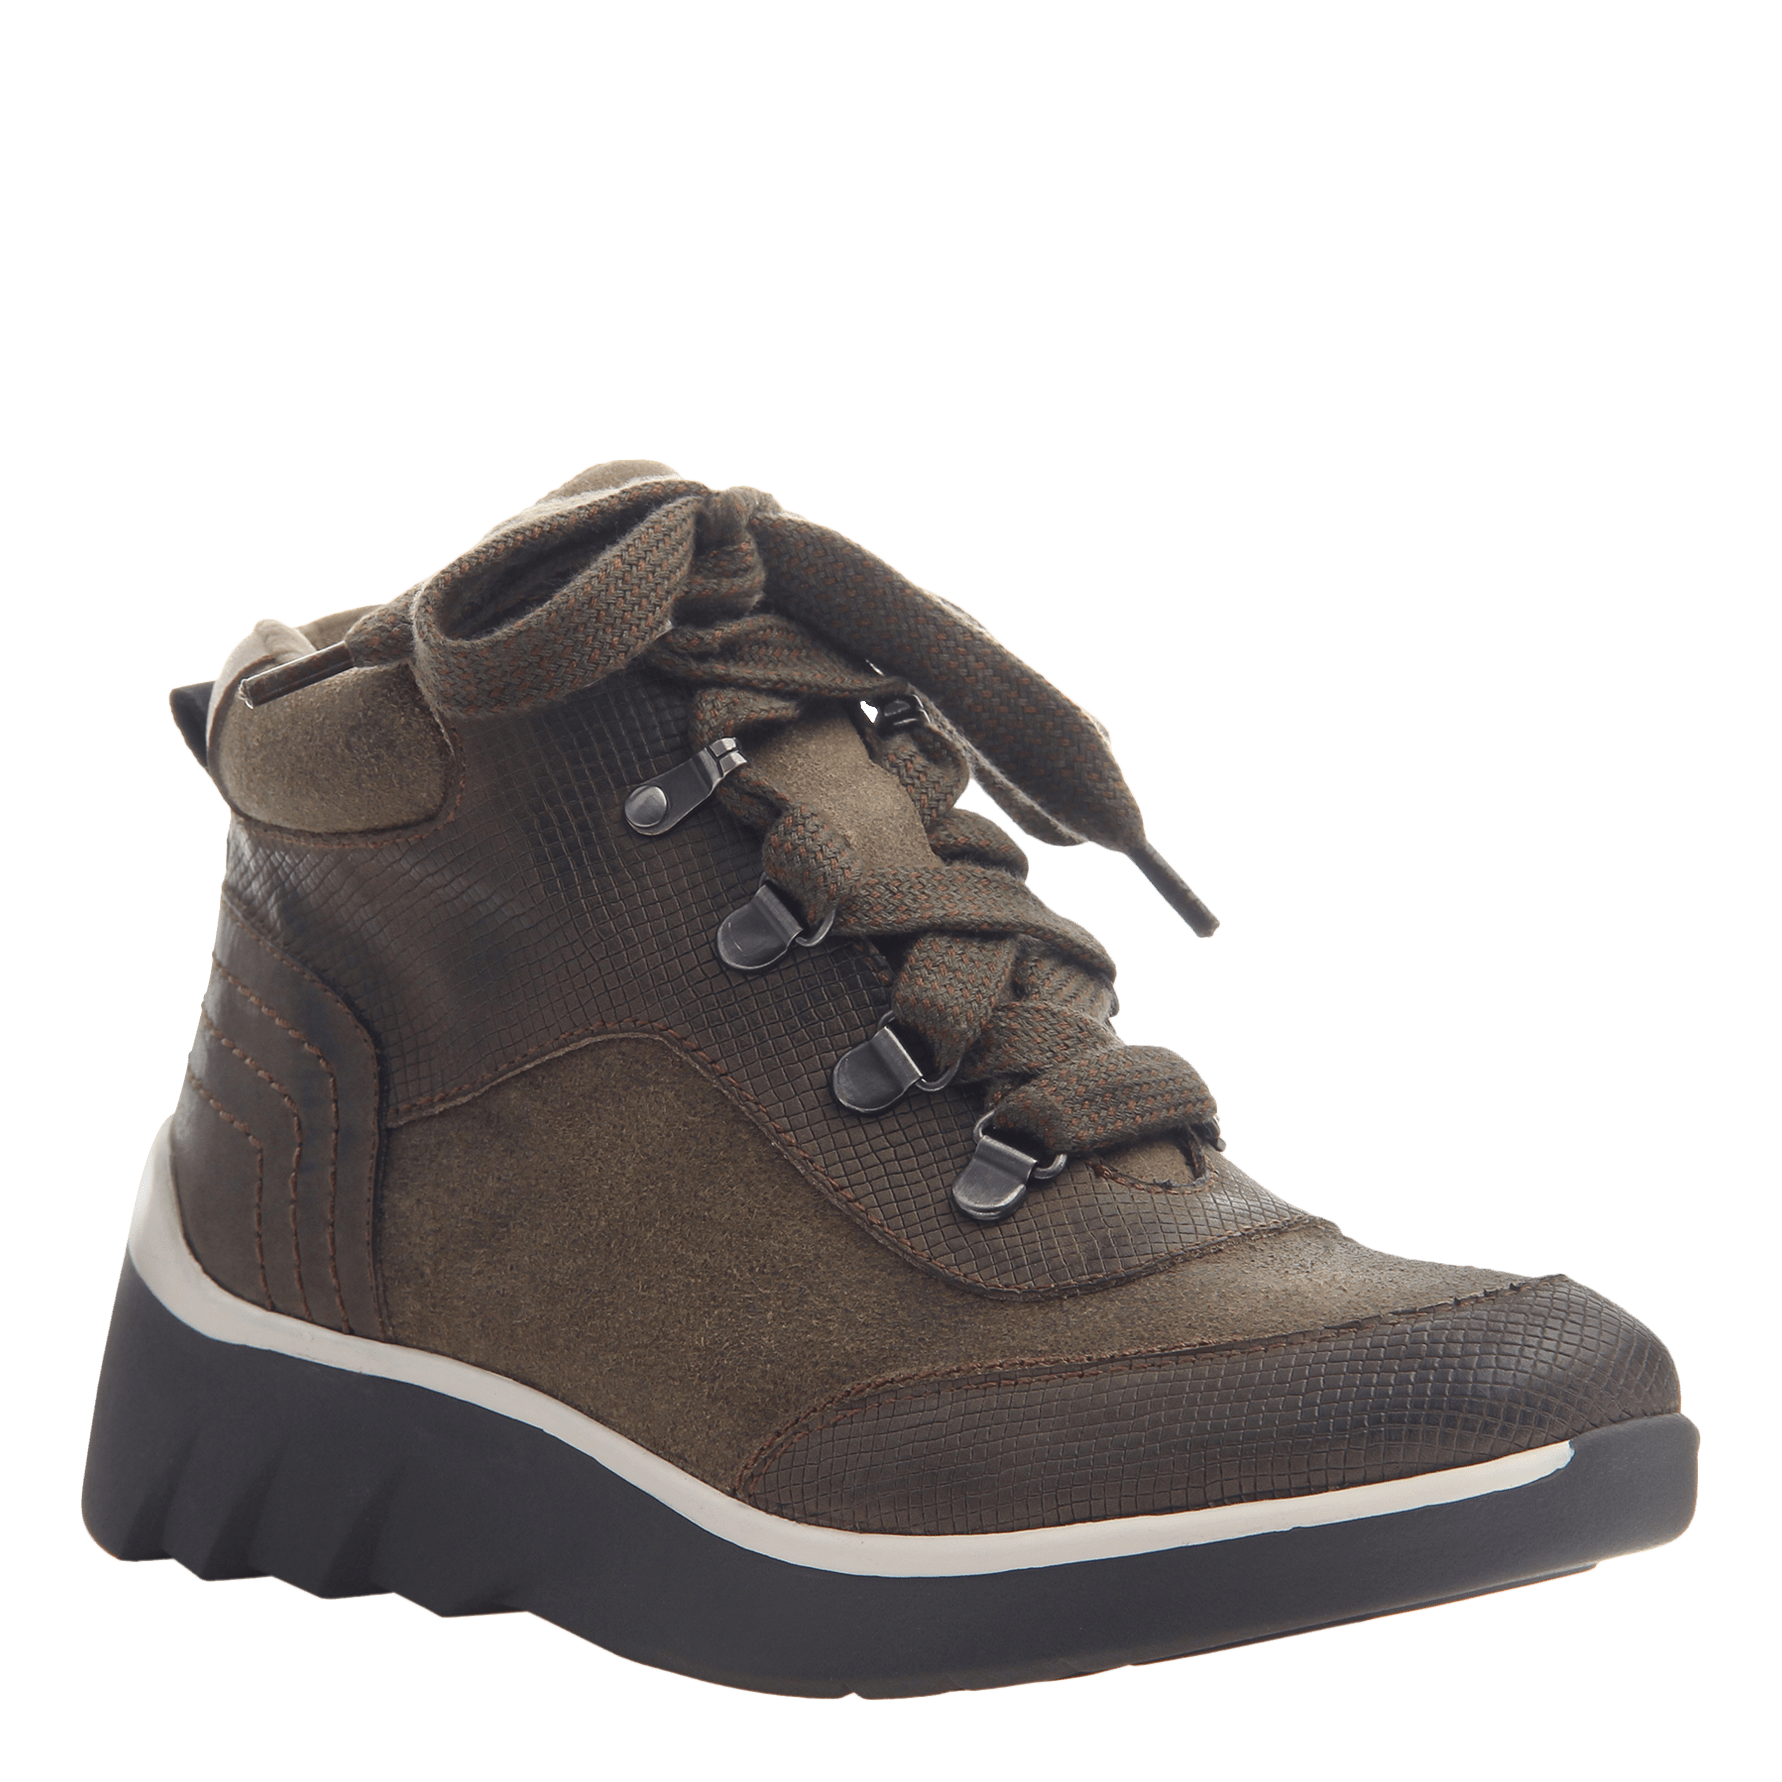 Women's hiker boot the commuter in Mint